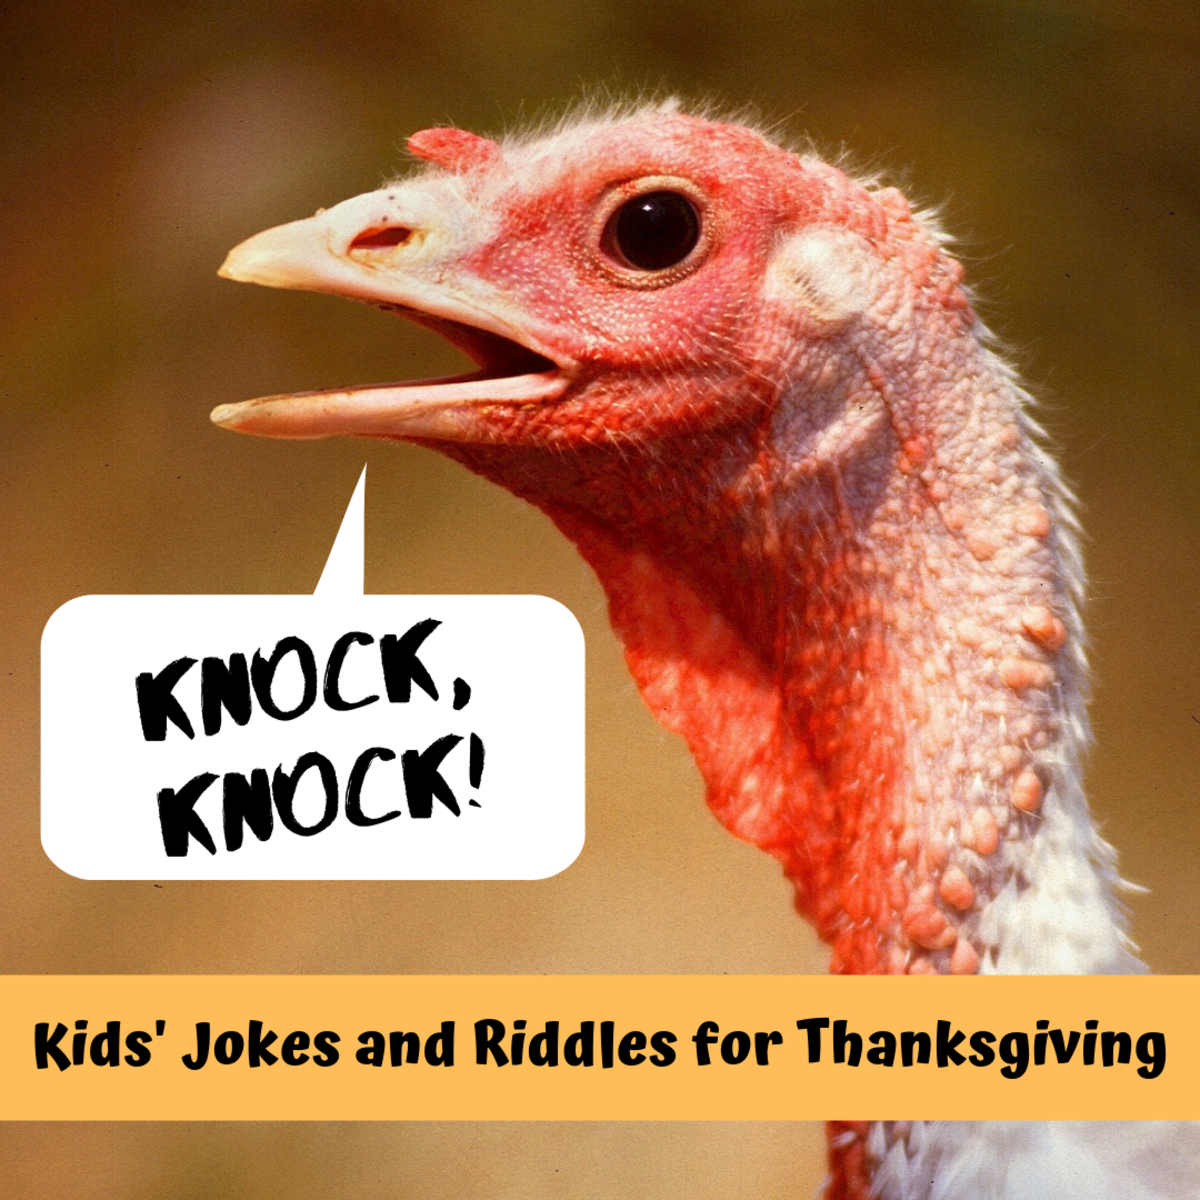 Find some funny and corny jokes and riddles to share on Thanksgiving!